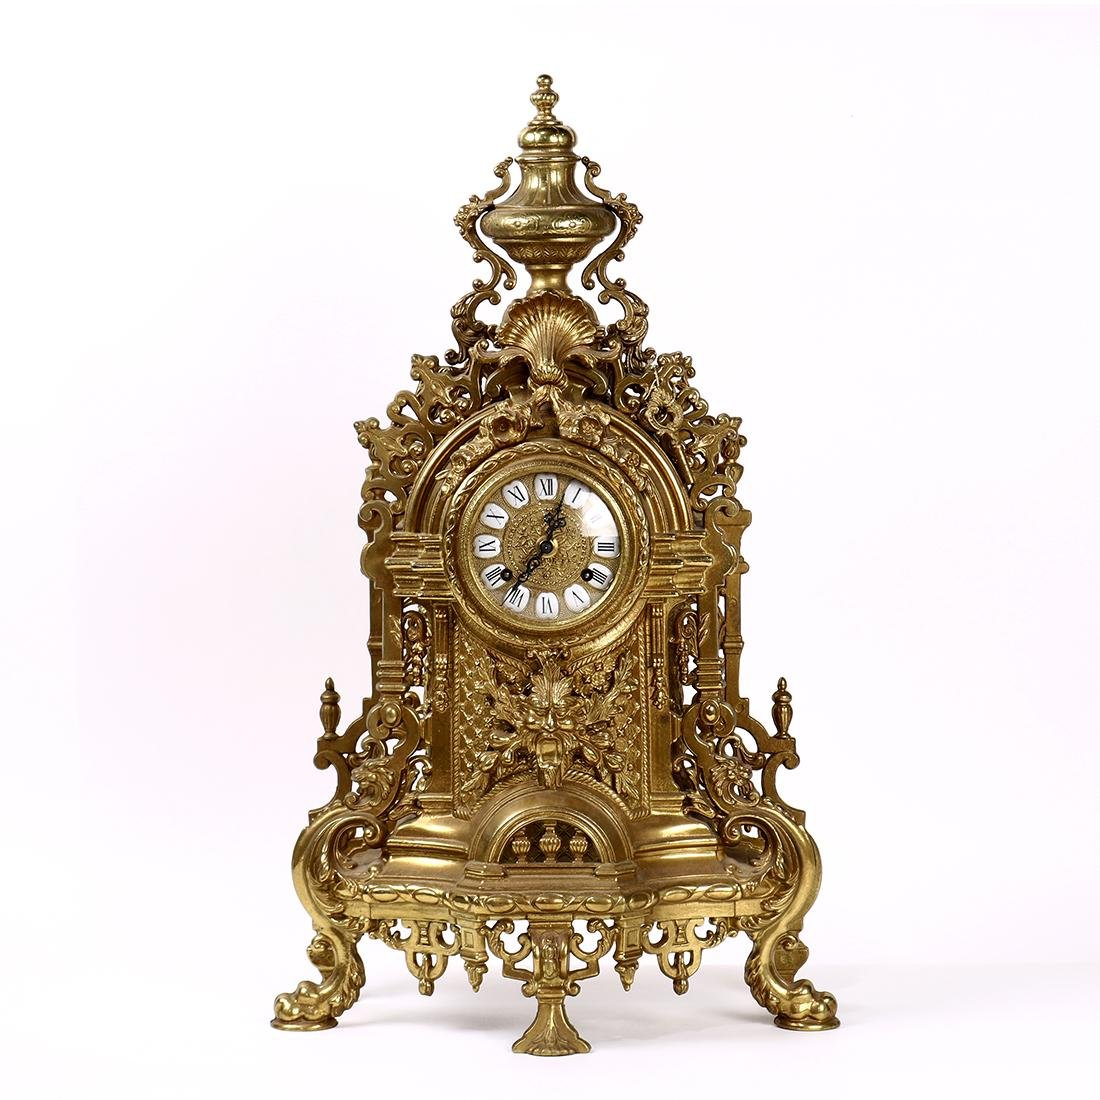 Rococo Revival style brass mantle clock, the round face